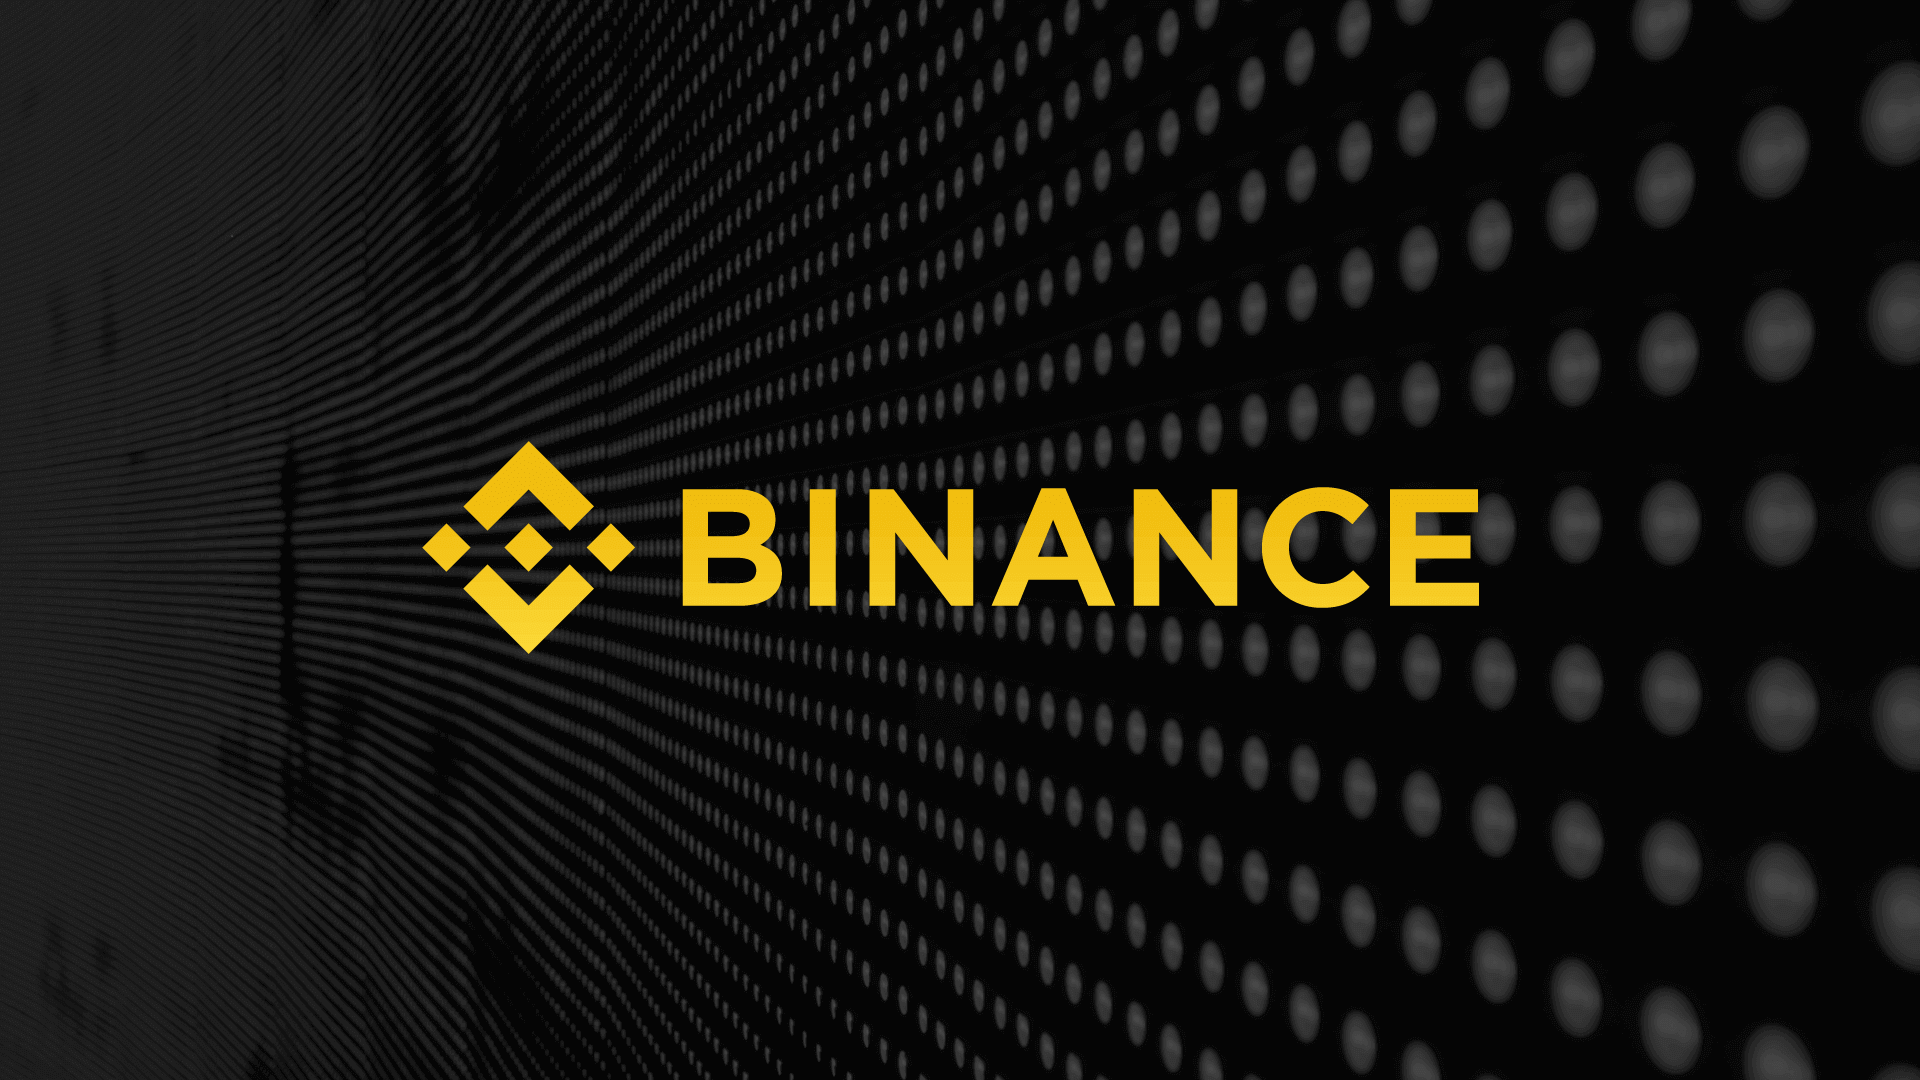 Binance's monthly report confirms the rise of DeFi